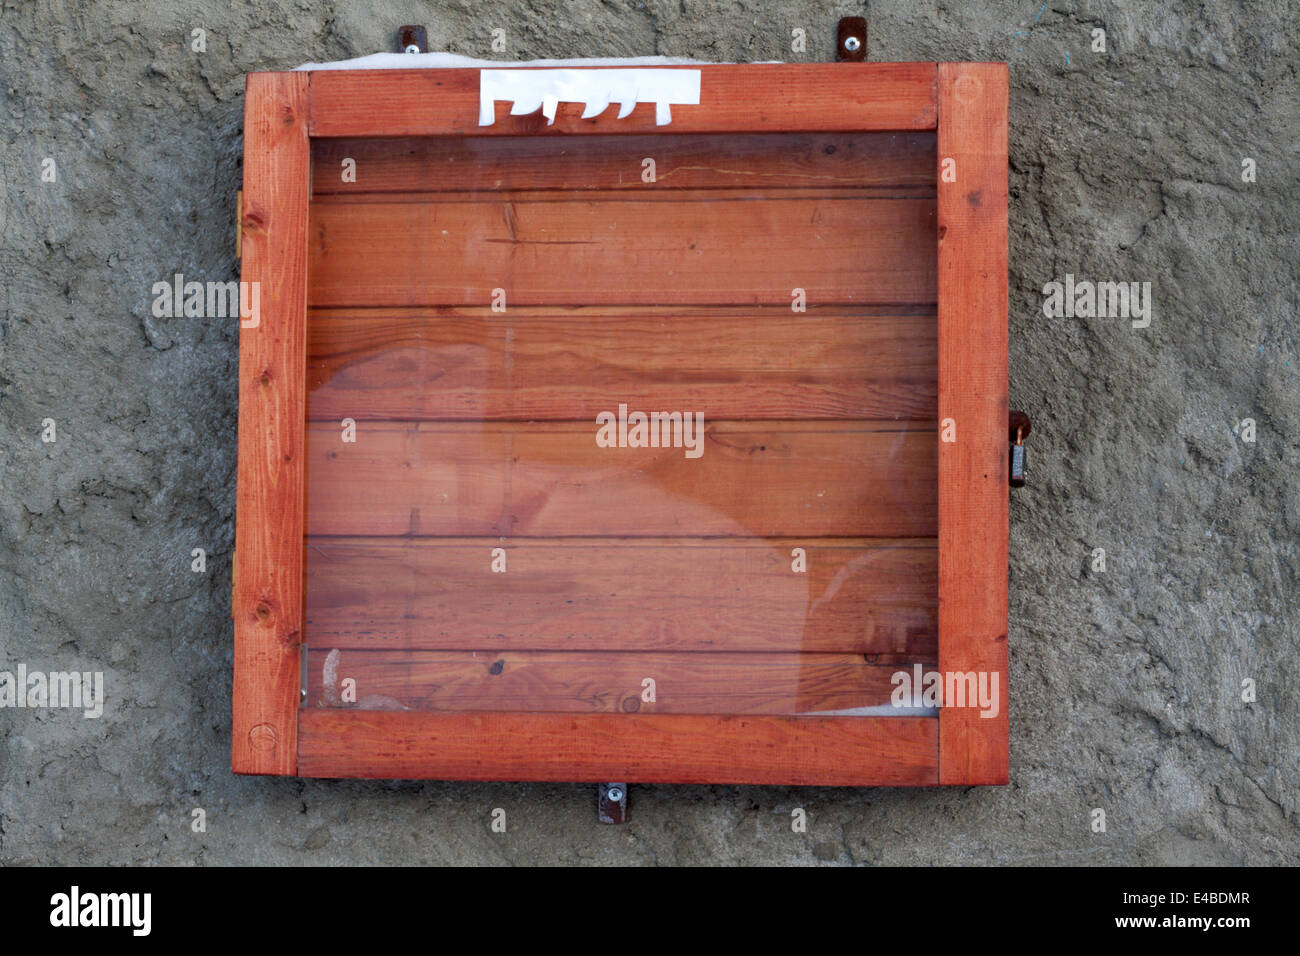 Wooden frame for announcements - Stock Image